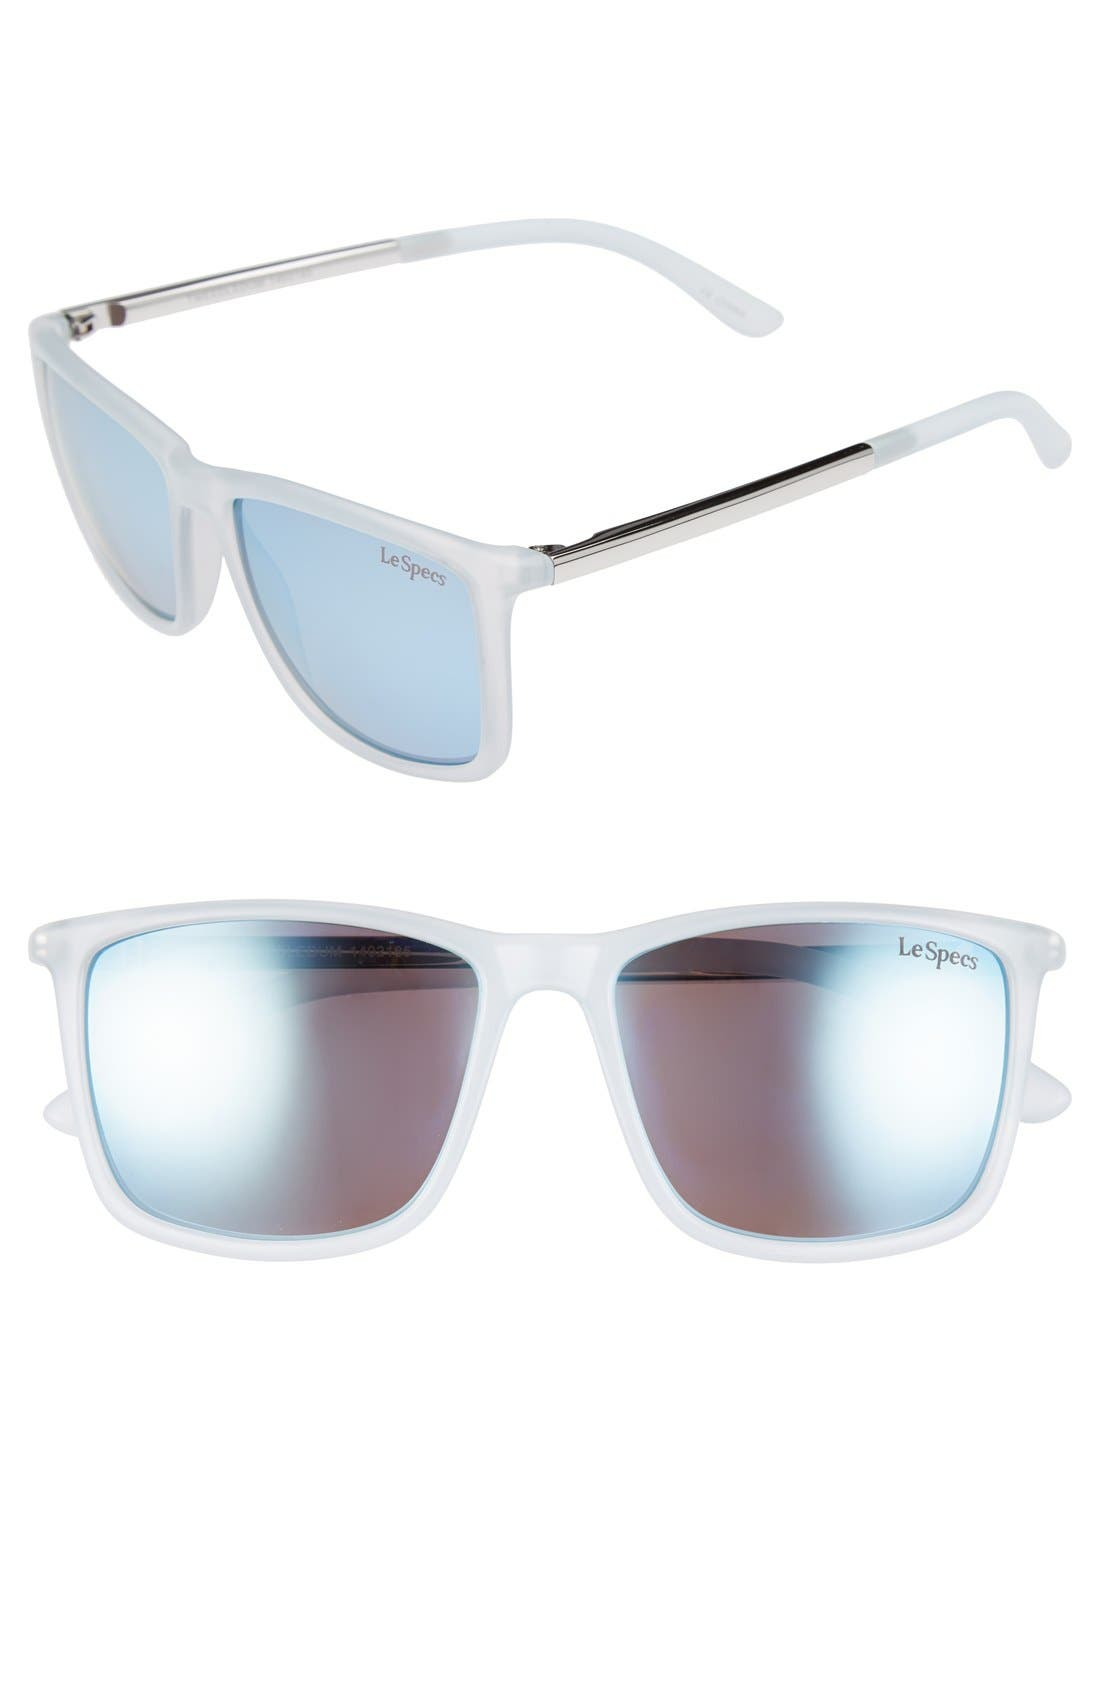 Main Image - Le Specs 56mm Retro Sunglasses